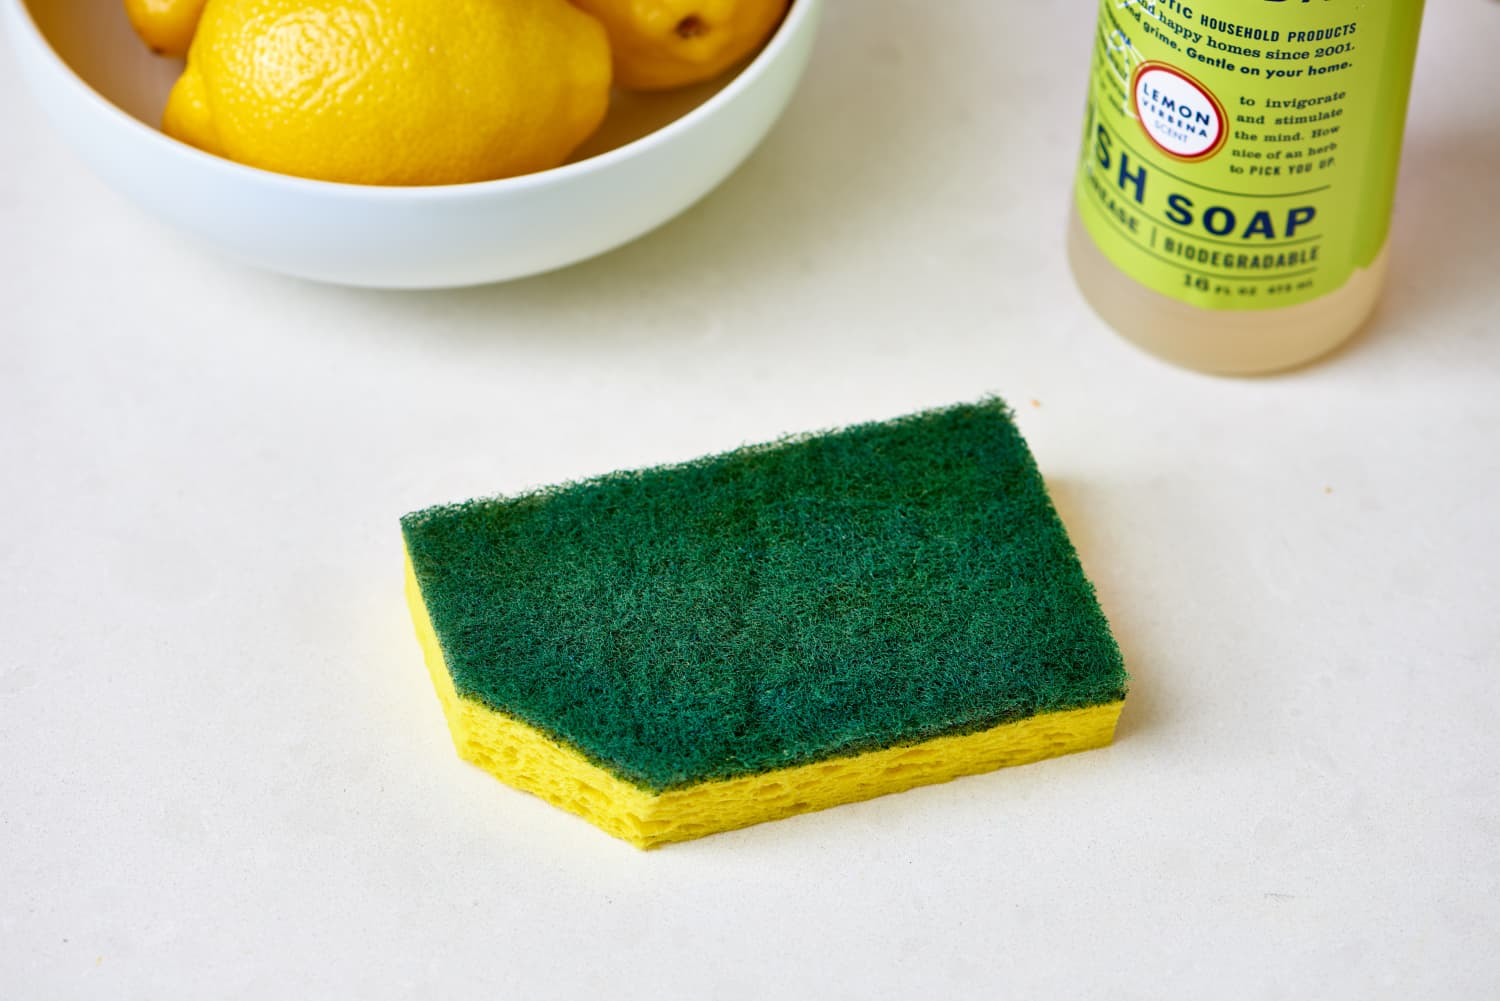 9 Simple Sponge Hacks Everyone Should Know